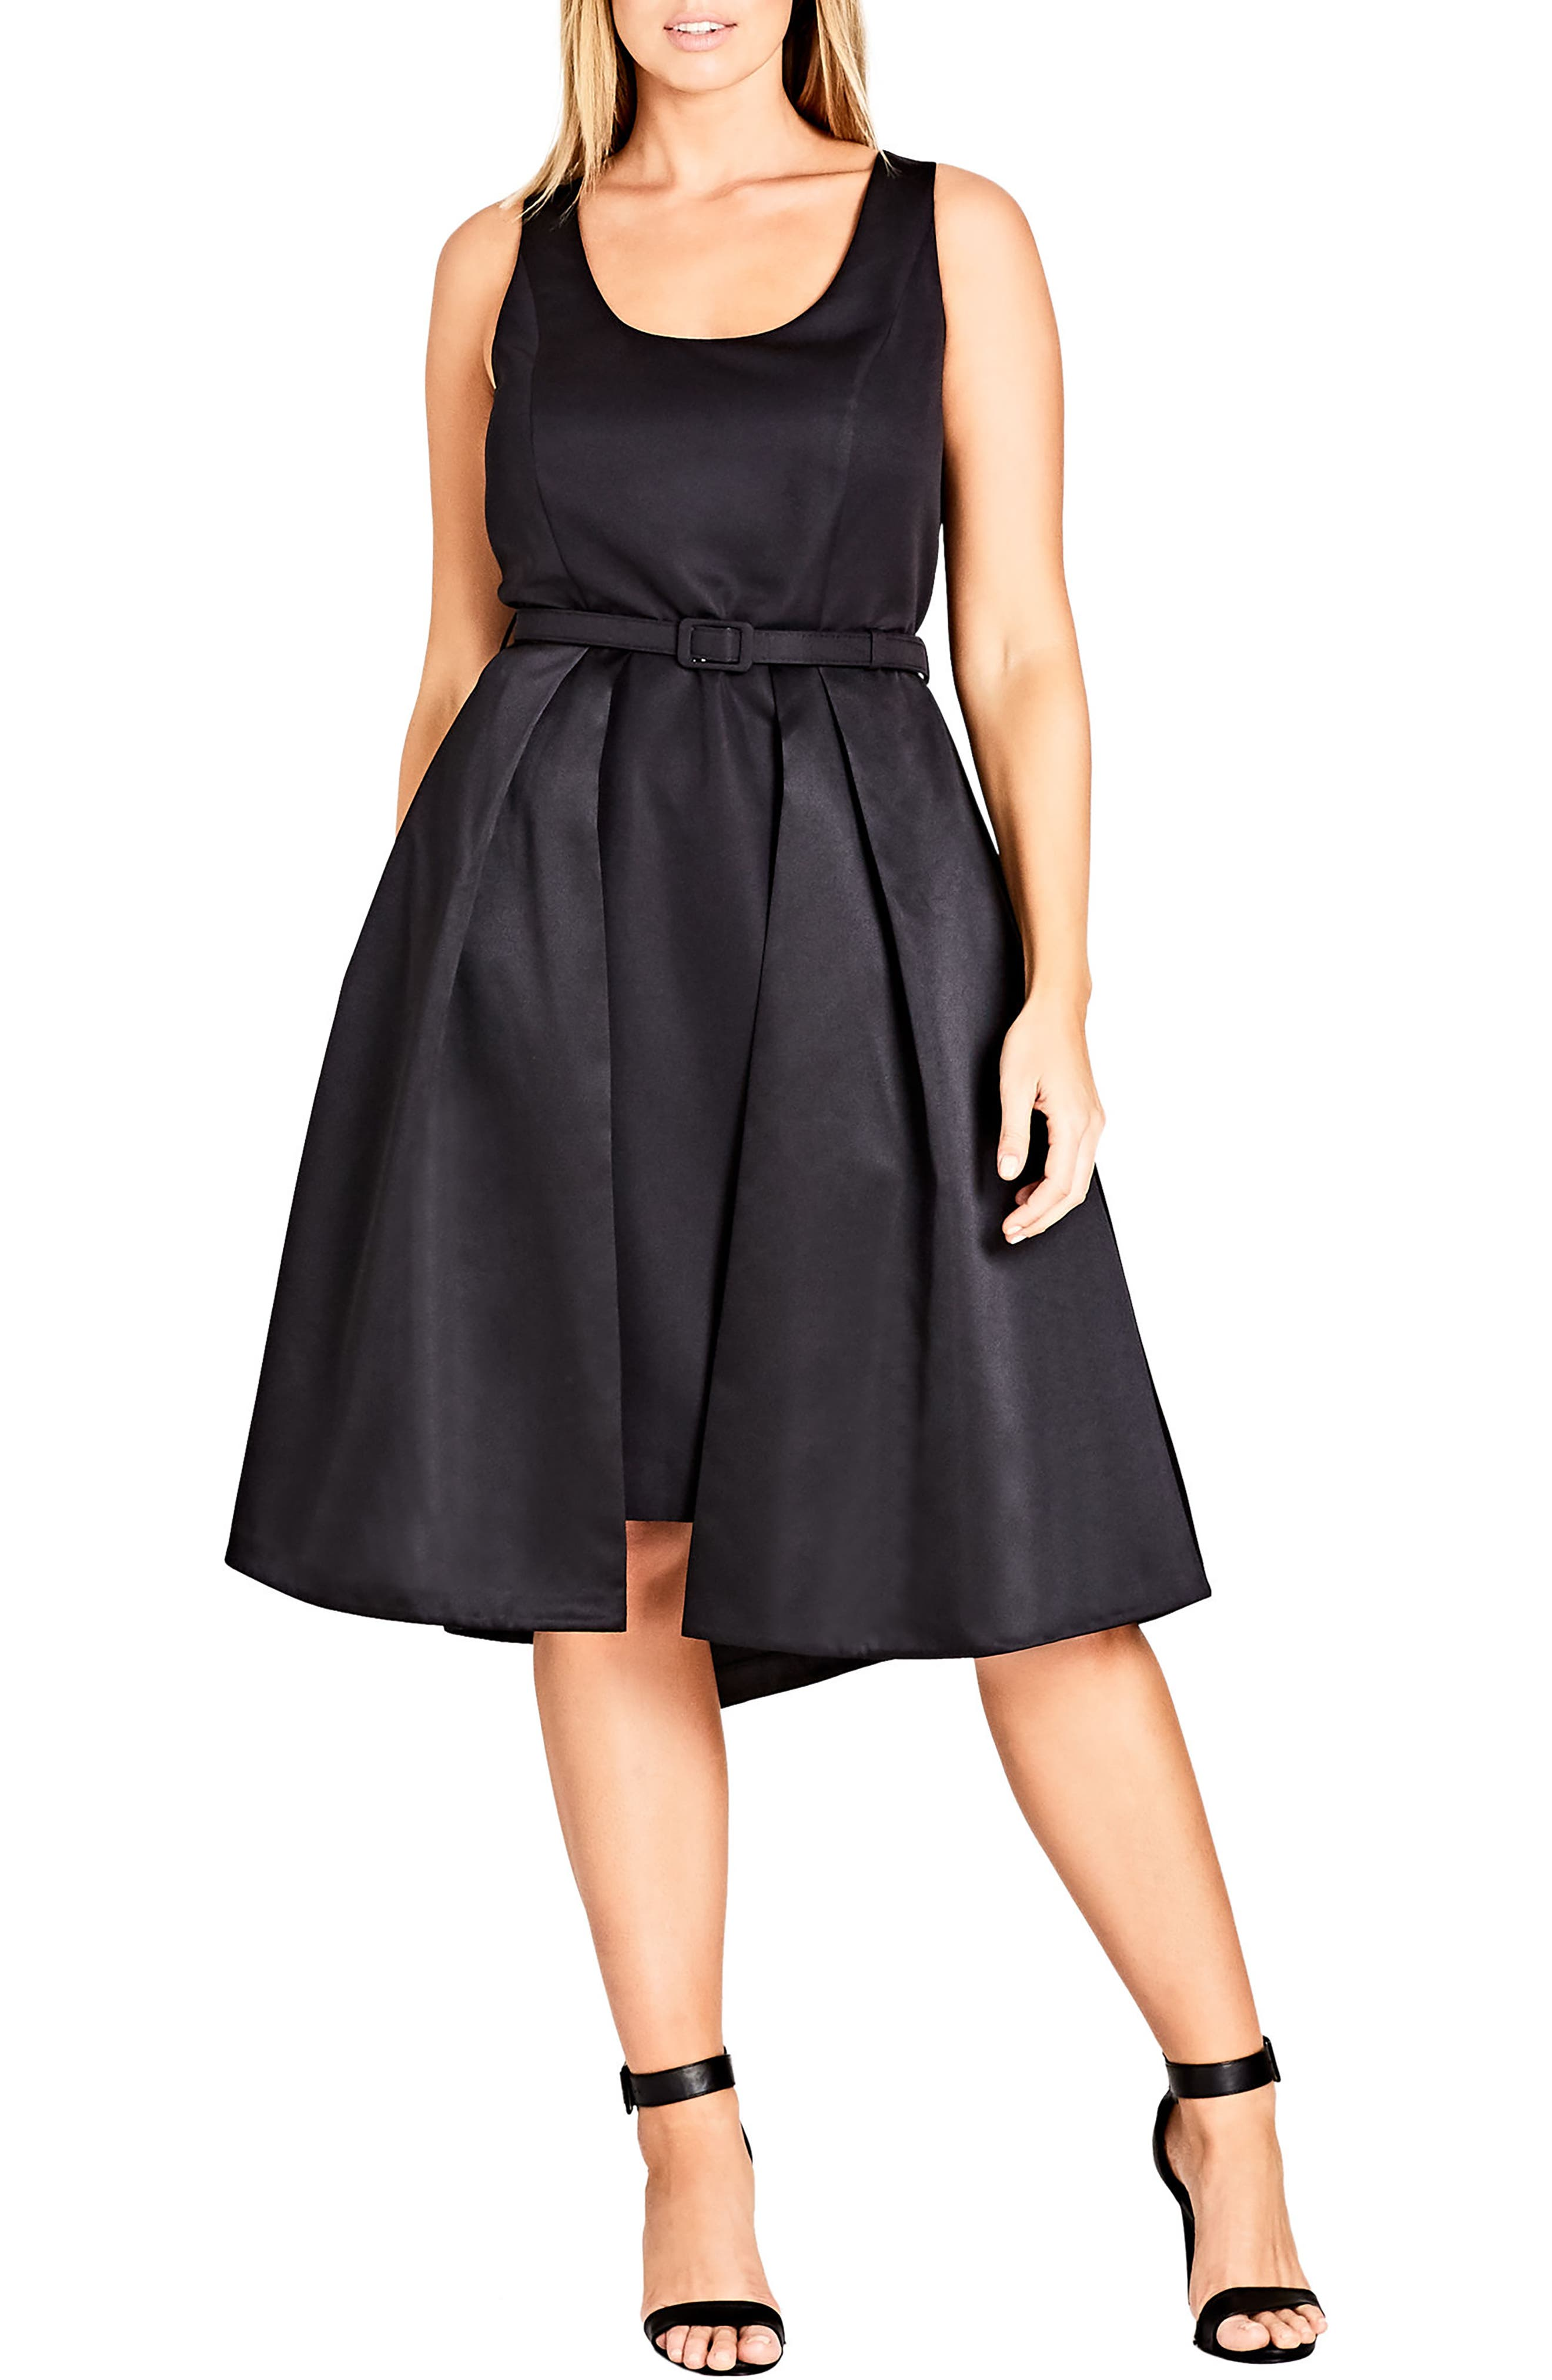 Alternate Image 1 Selected - City Chic Audrey Fit & Flare Dress (Plus Size)